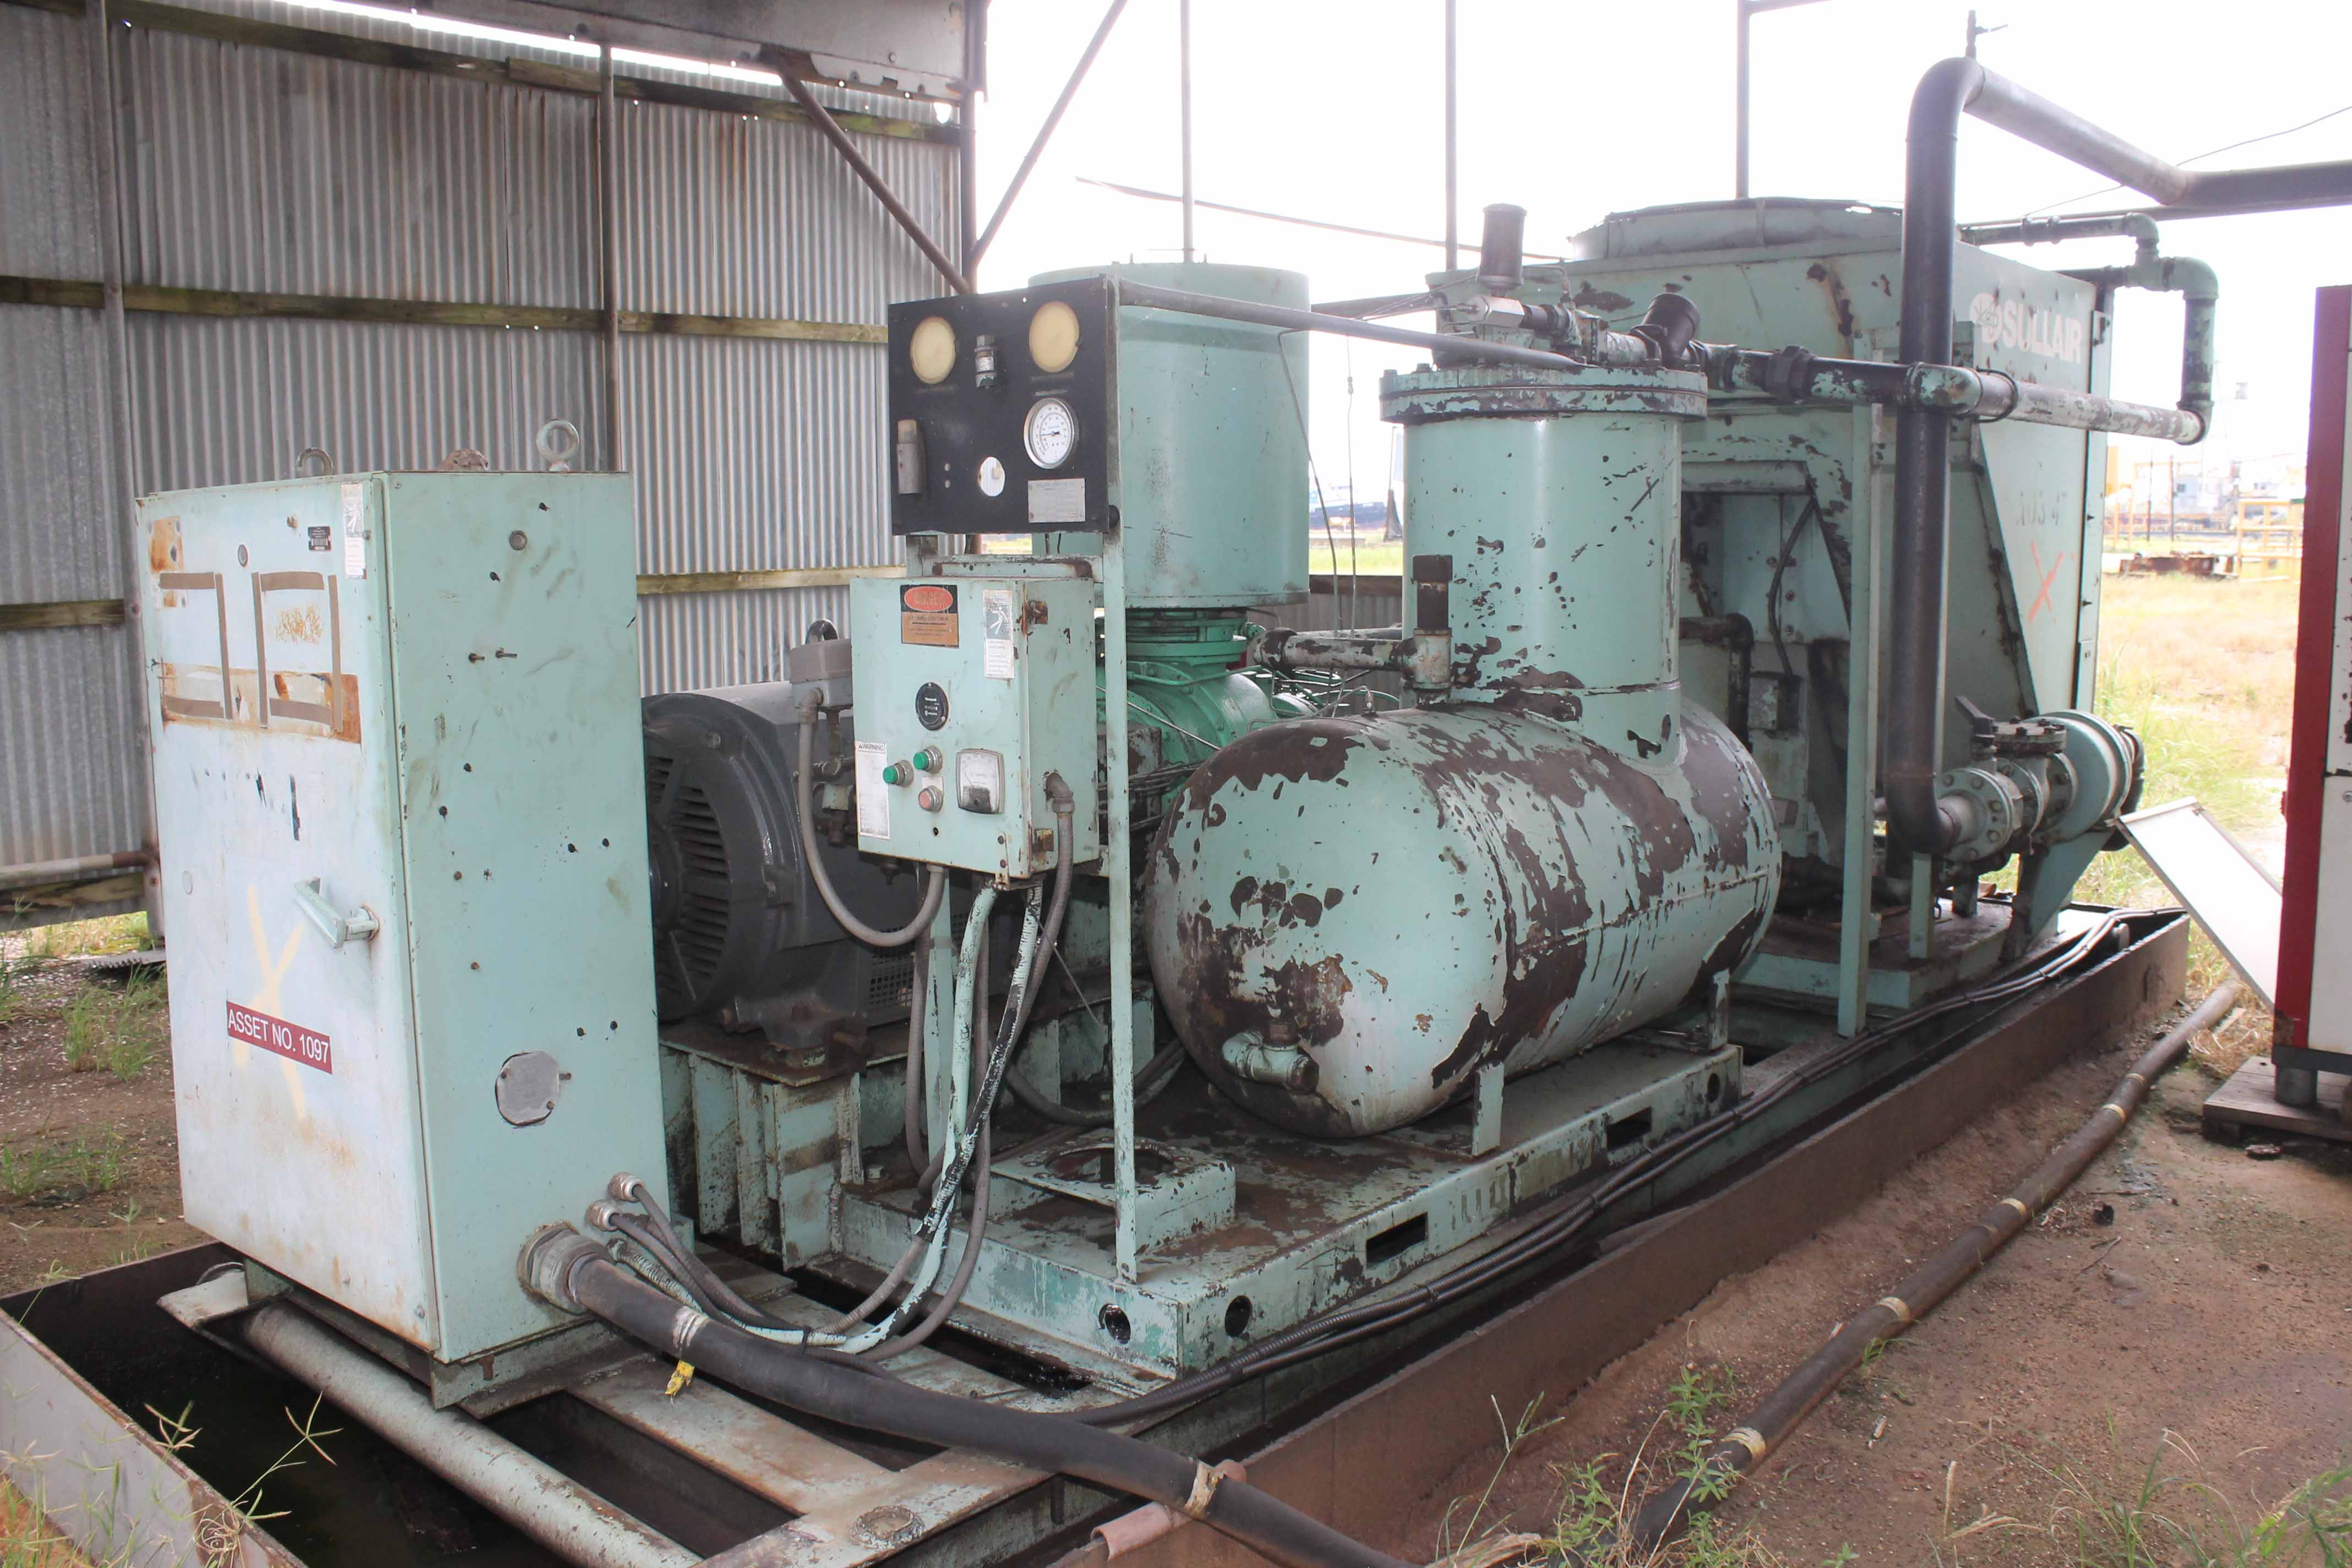 Lot 25 - Air Compressor, Sullair, rotary screw type, 300 HP motor replaced 6 months ago, skid mounted, air